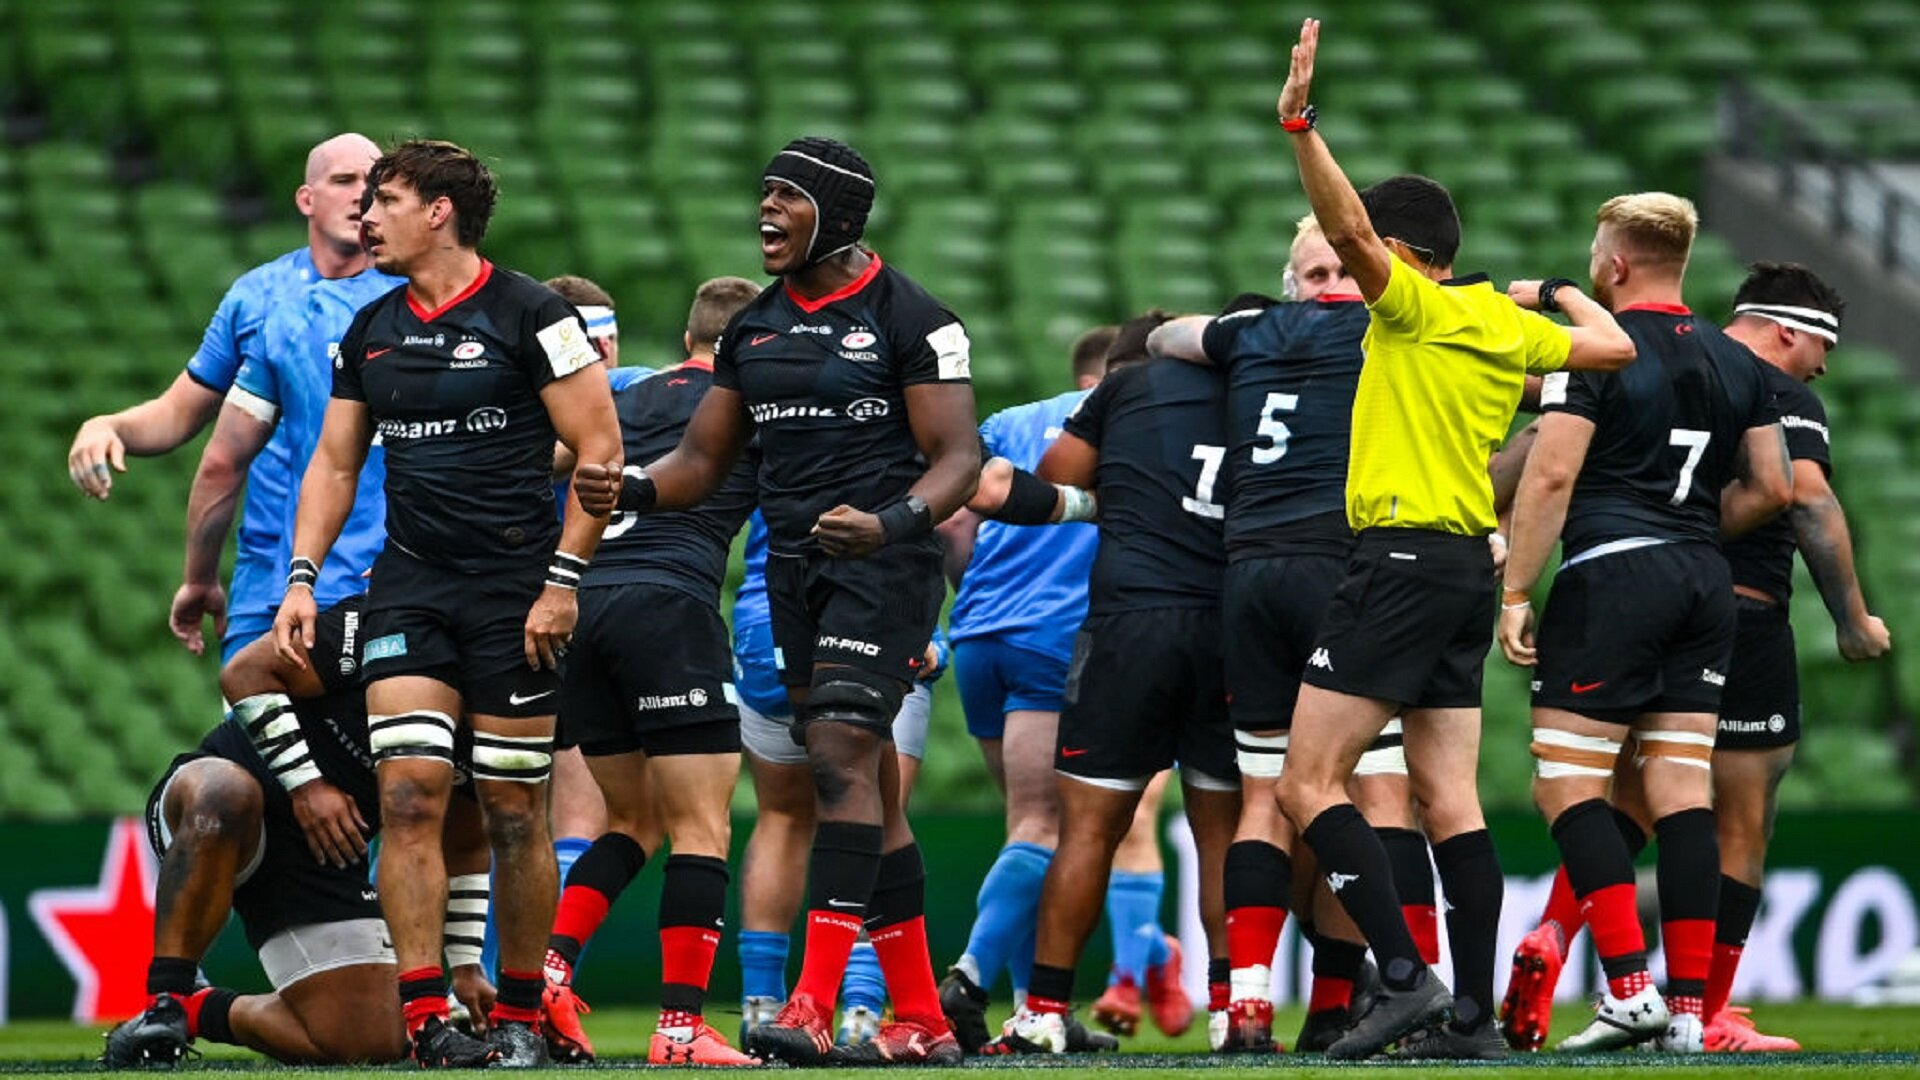 The real legacy of Saracens lies in Europe, not the Premiership